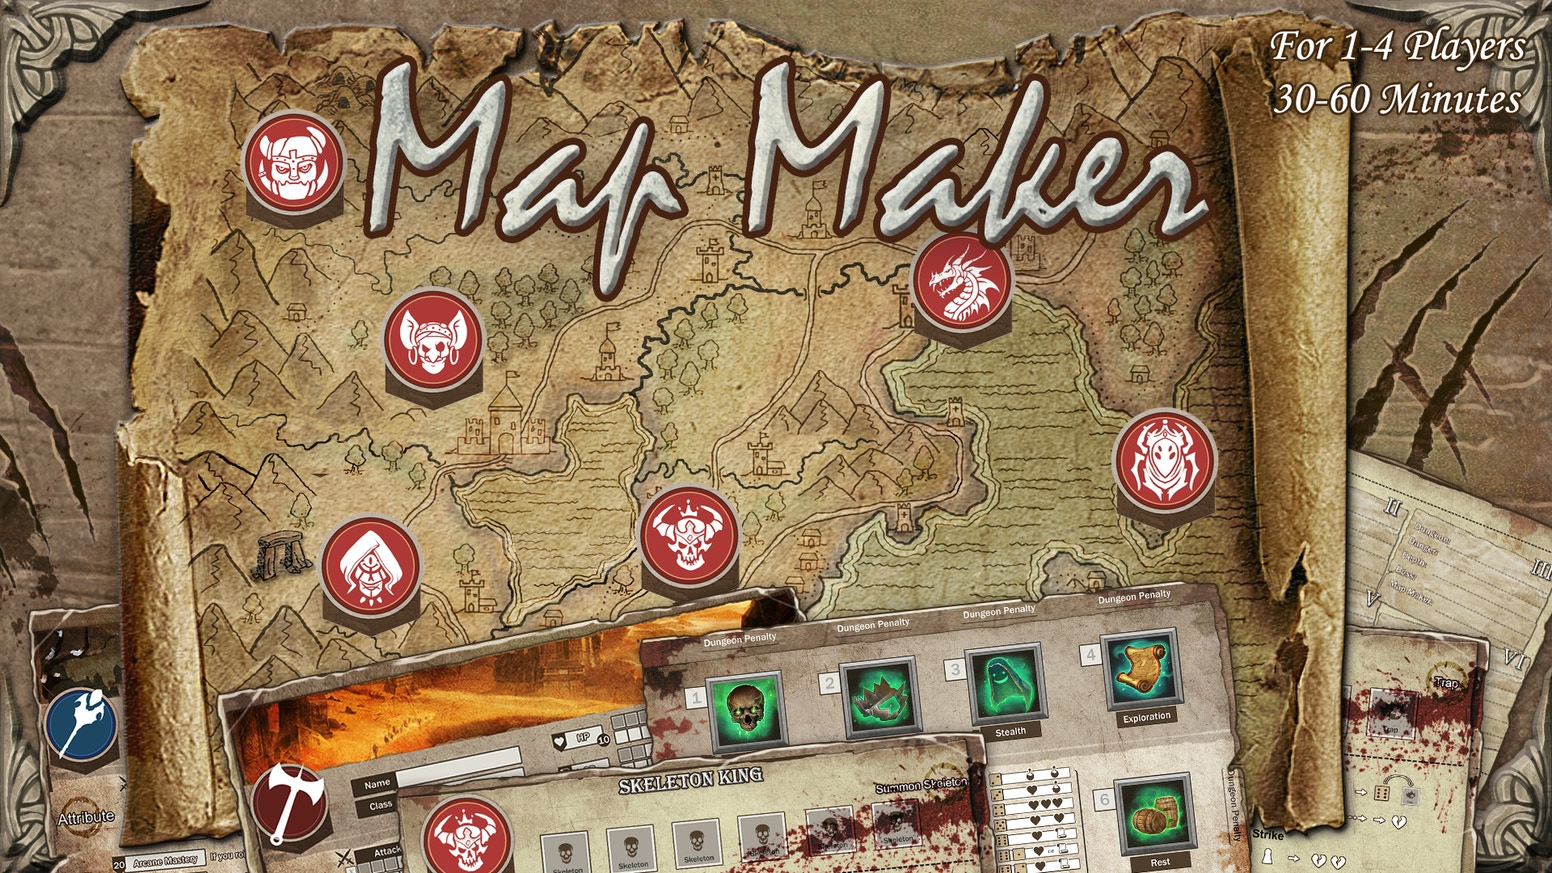 Map Maker physical edition is the top crowdfunding project launched today. Map Maker physical edition raised over $797309 from 626 backers. Other top projects include Enchanters: Overlords, Los Huevos de Lencha, Slick Diapers - Remove the Frustration Out of Diaper Change...